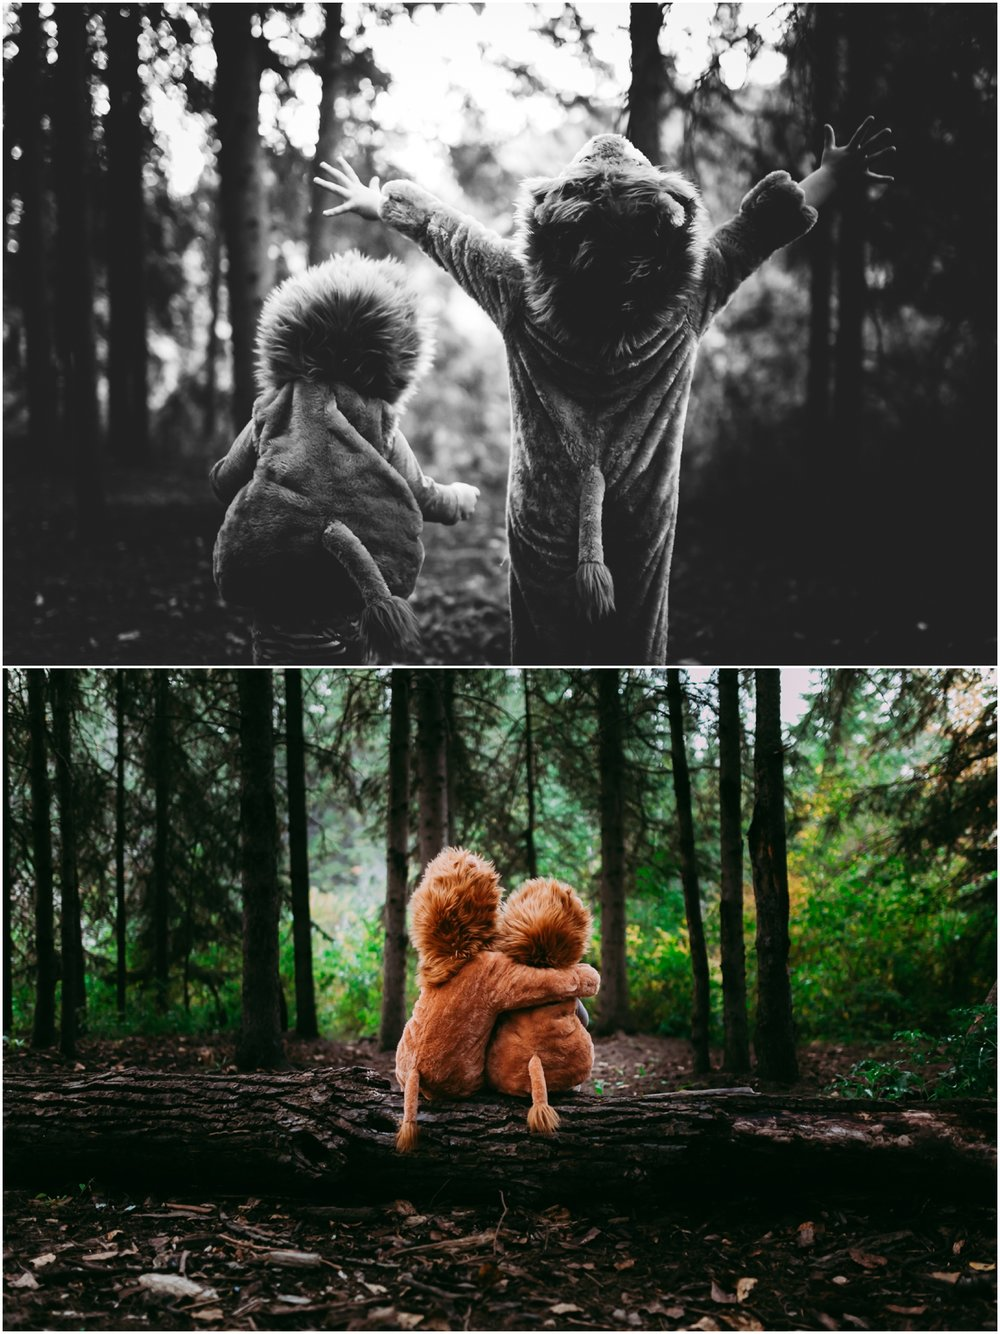 Edmonton Lifestyle Photographer - Best of 2016 - halloween costume - Where the wild things are - Lions - Lion costumes - Whitemud Ravine Park - YEG